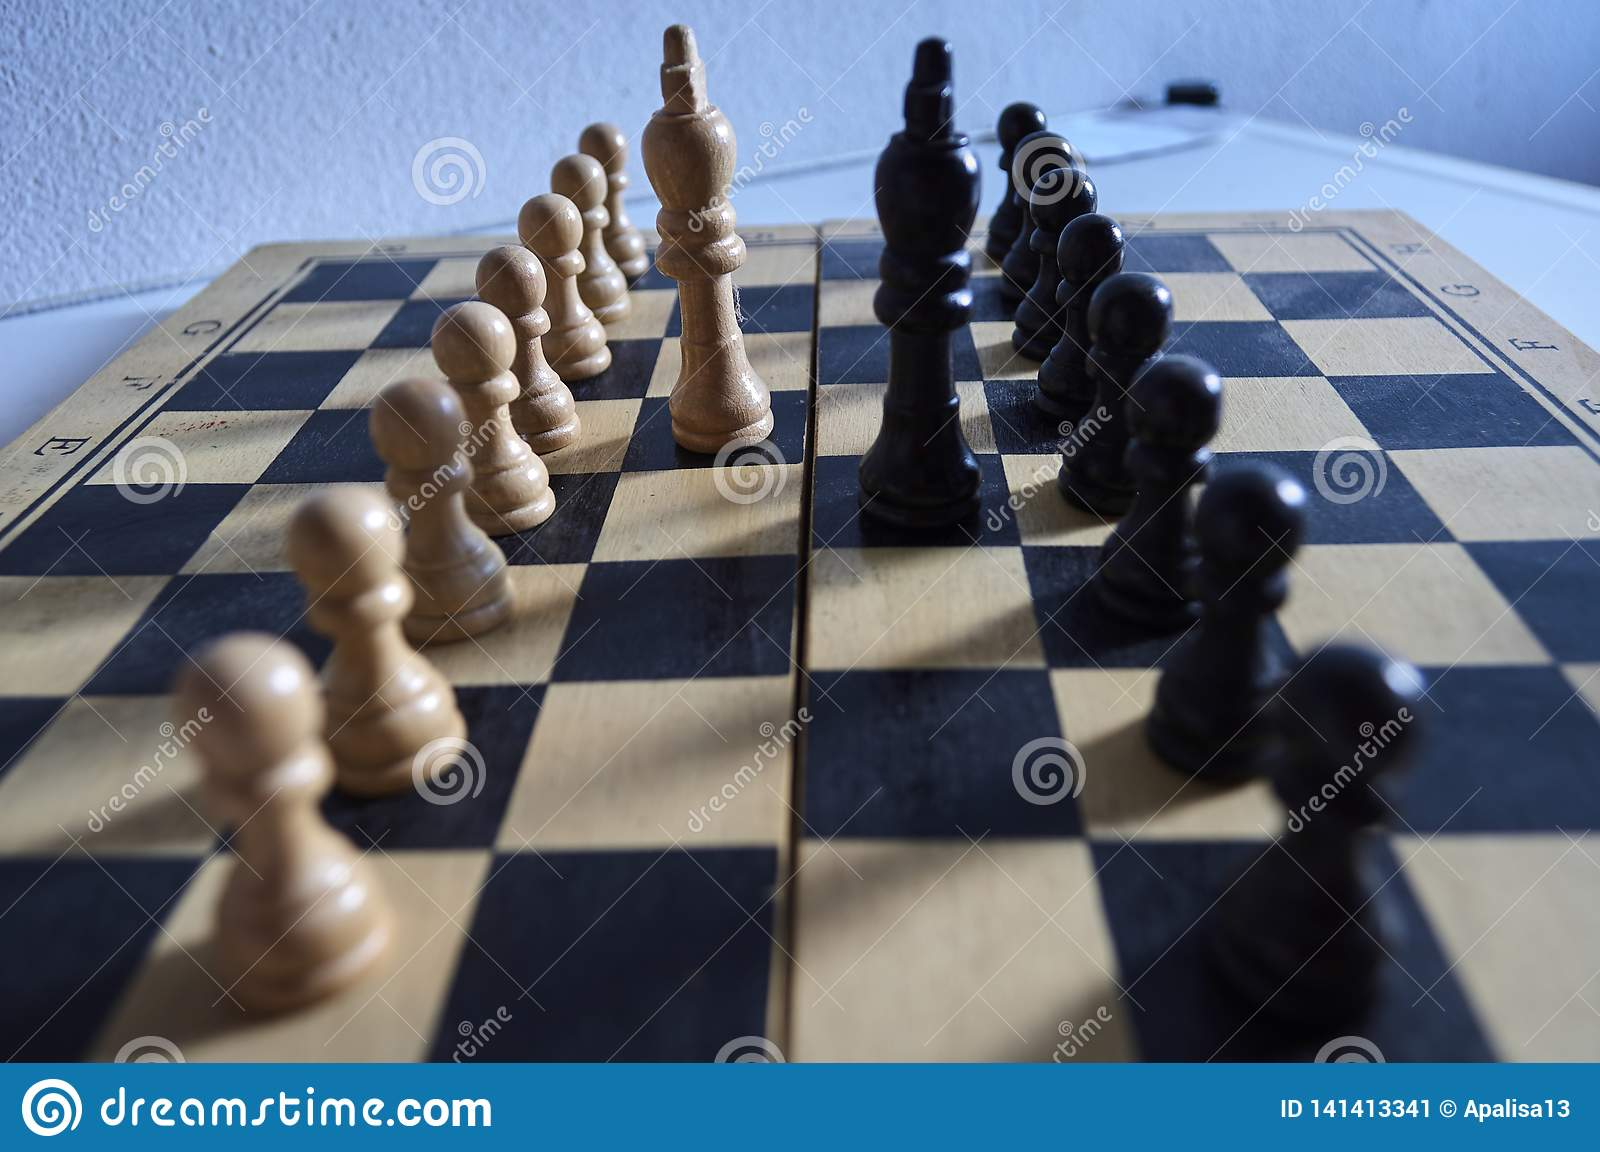 White and black chess kings and pawns on chessboard